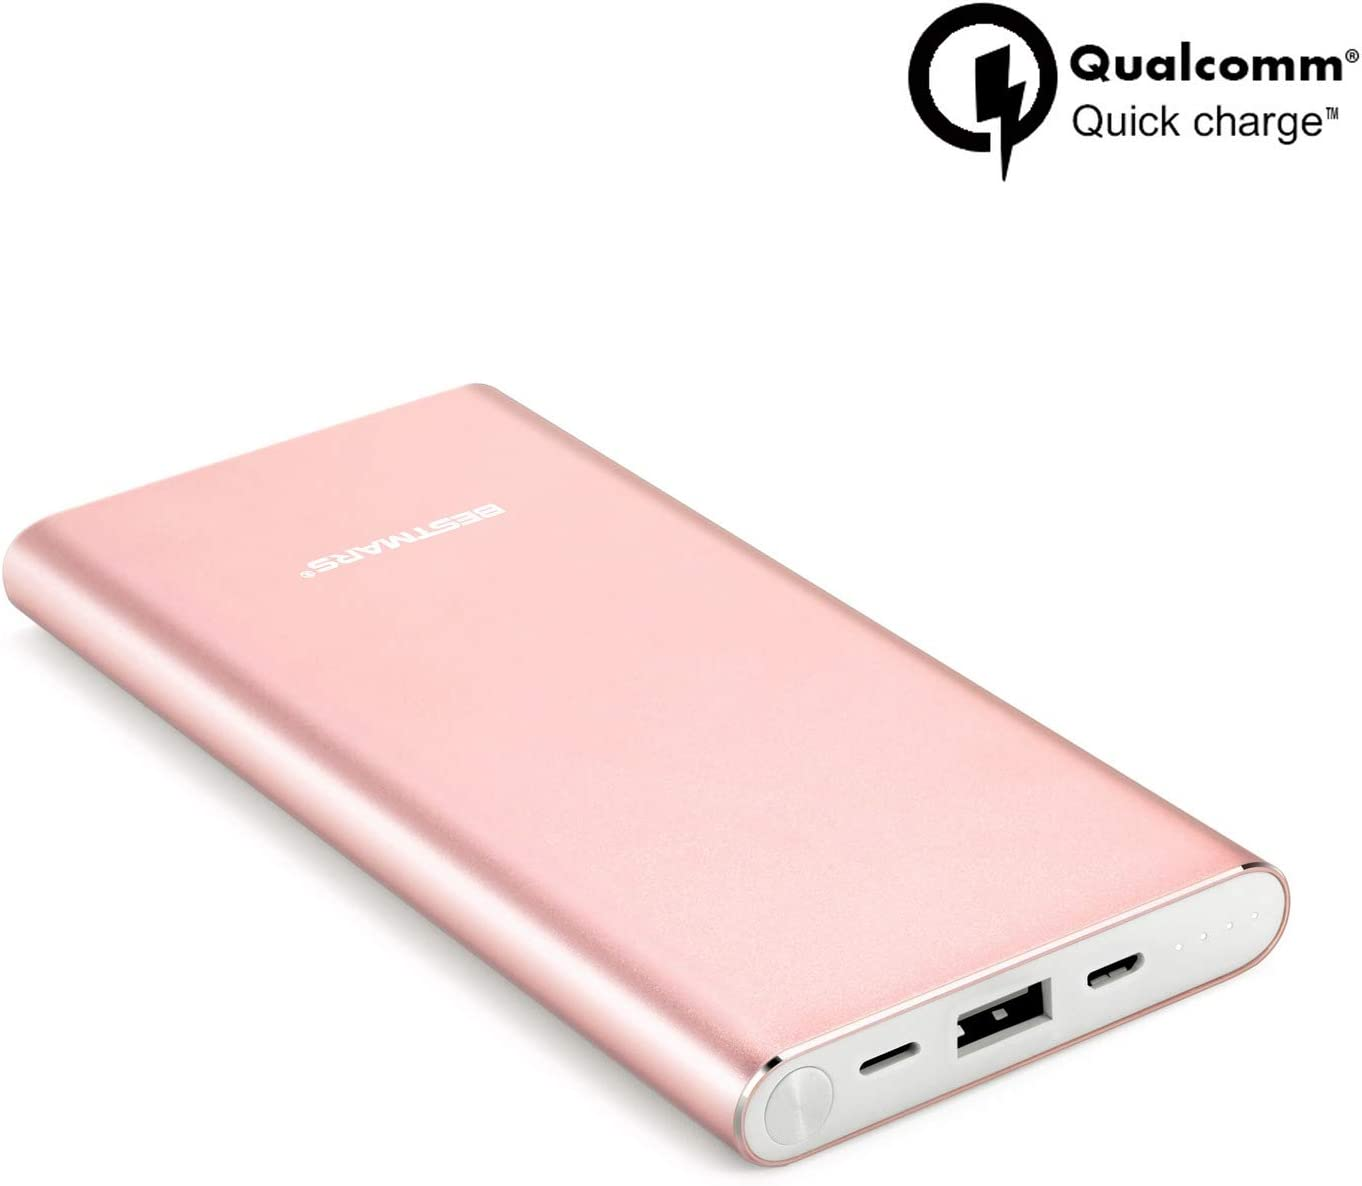 10000mAh Quick Charge QC 3.0 Portable Charger Fast Charging Power Bank Slim Back Up Battery Pack Compatible For iPhone X XS MAX XR 8 7 6 6s Plus 5s & iPad Android Samsung Galaxy Cell Phone - Rose Gold